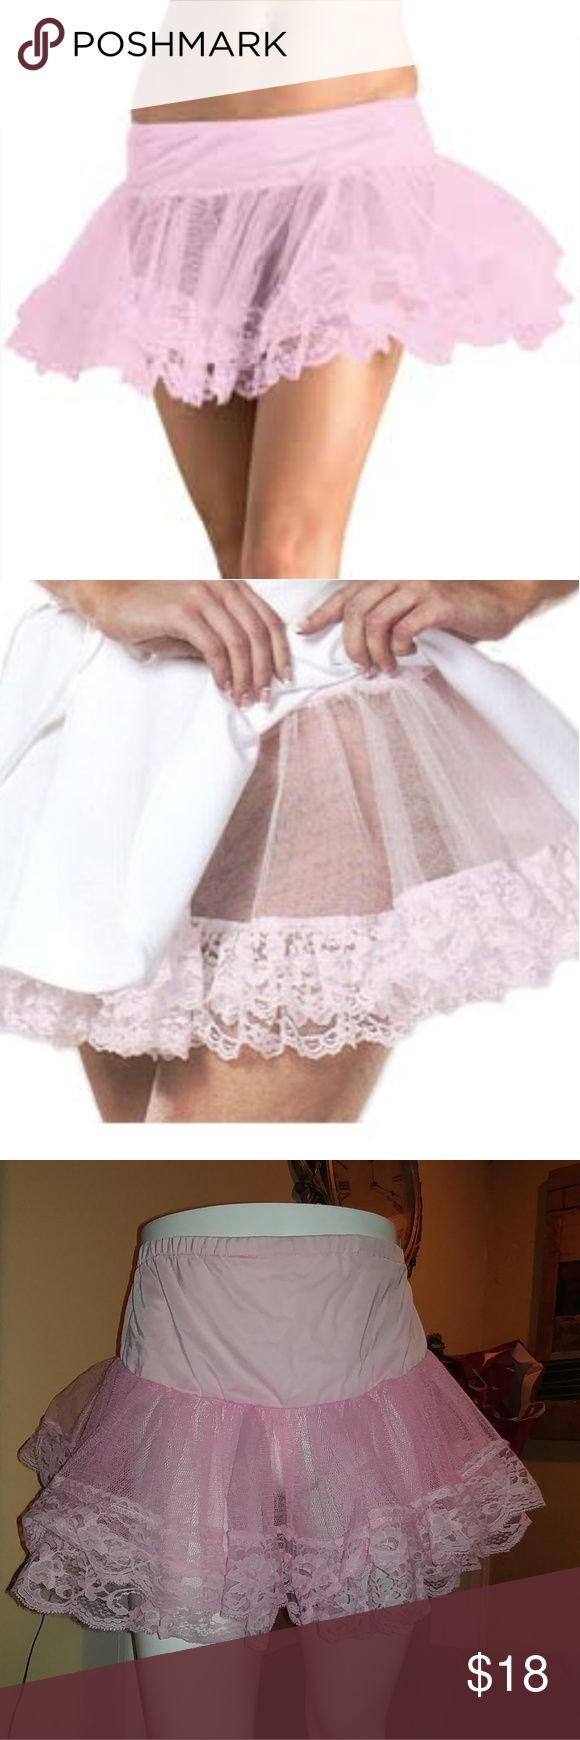 Pink petticoat with lace trim There's something both beautifully feminine and wonderfully sexy about a pink lace petticoat peeking out from under a costume. Whether you're going the tried-and-true French Maid route or letting your inner Miss Piggy out, this Sexy Pink Petticoat Lace Slip can bring your costume to the next level. Leg Avenue Skirts Mini